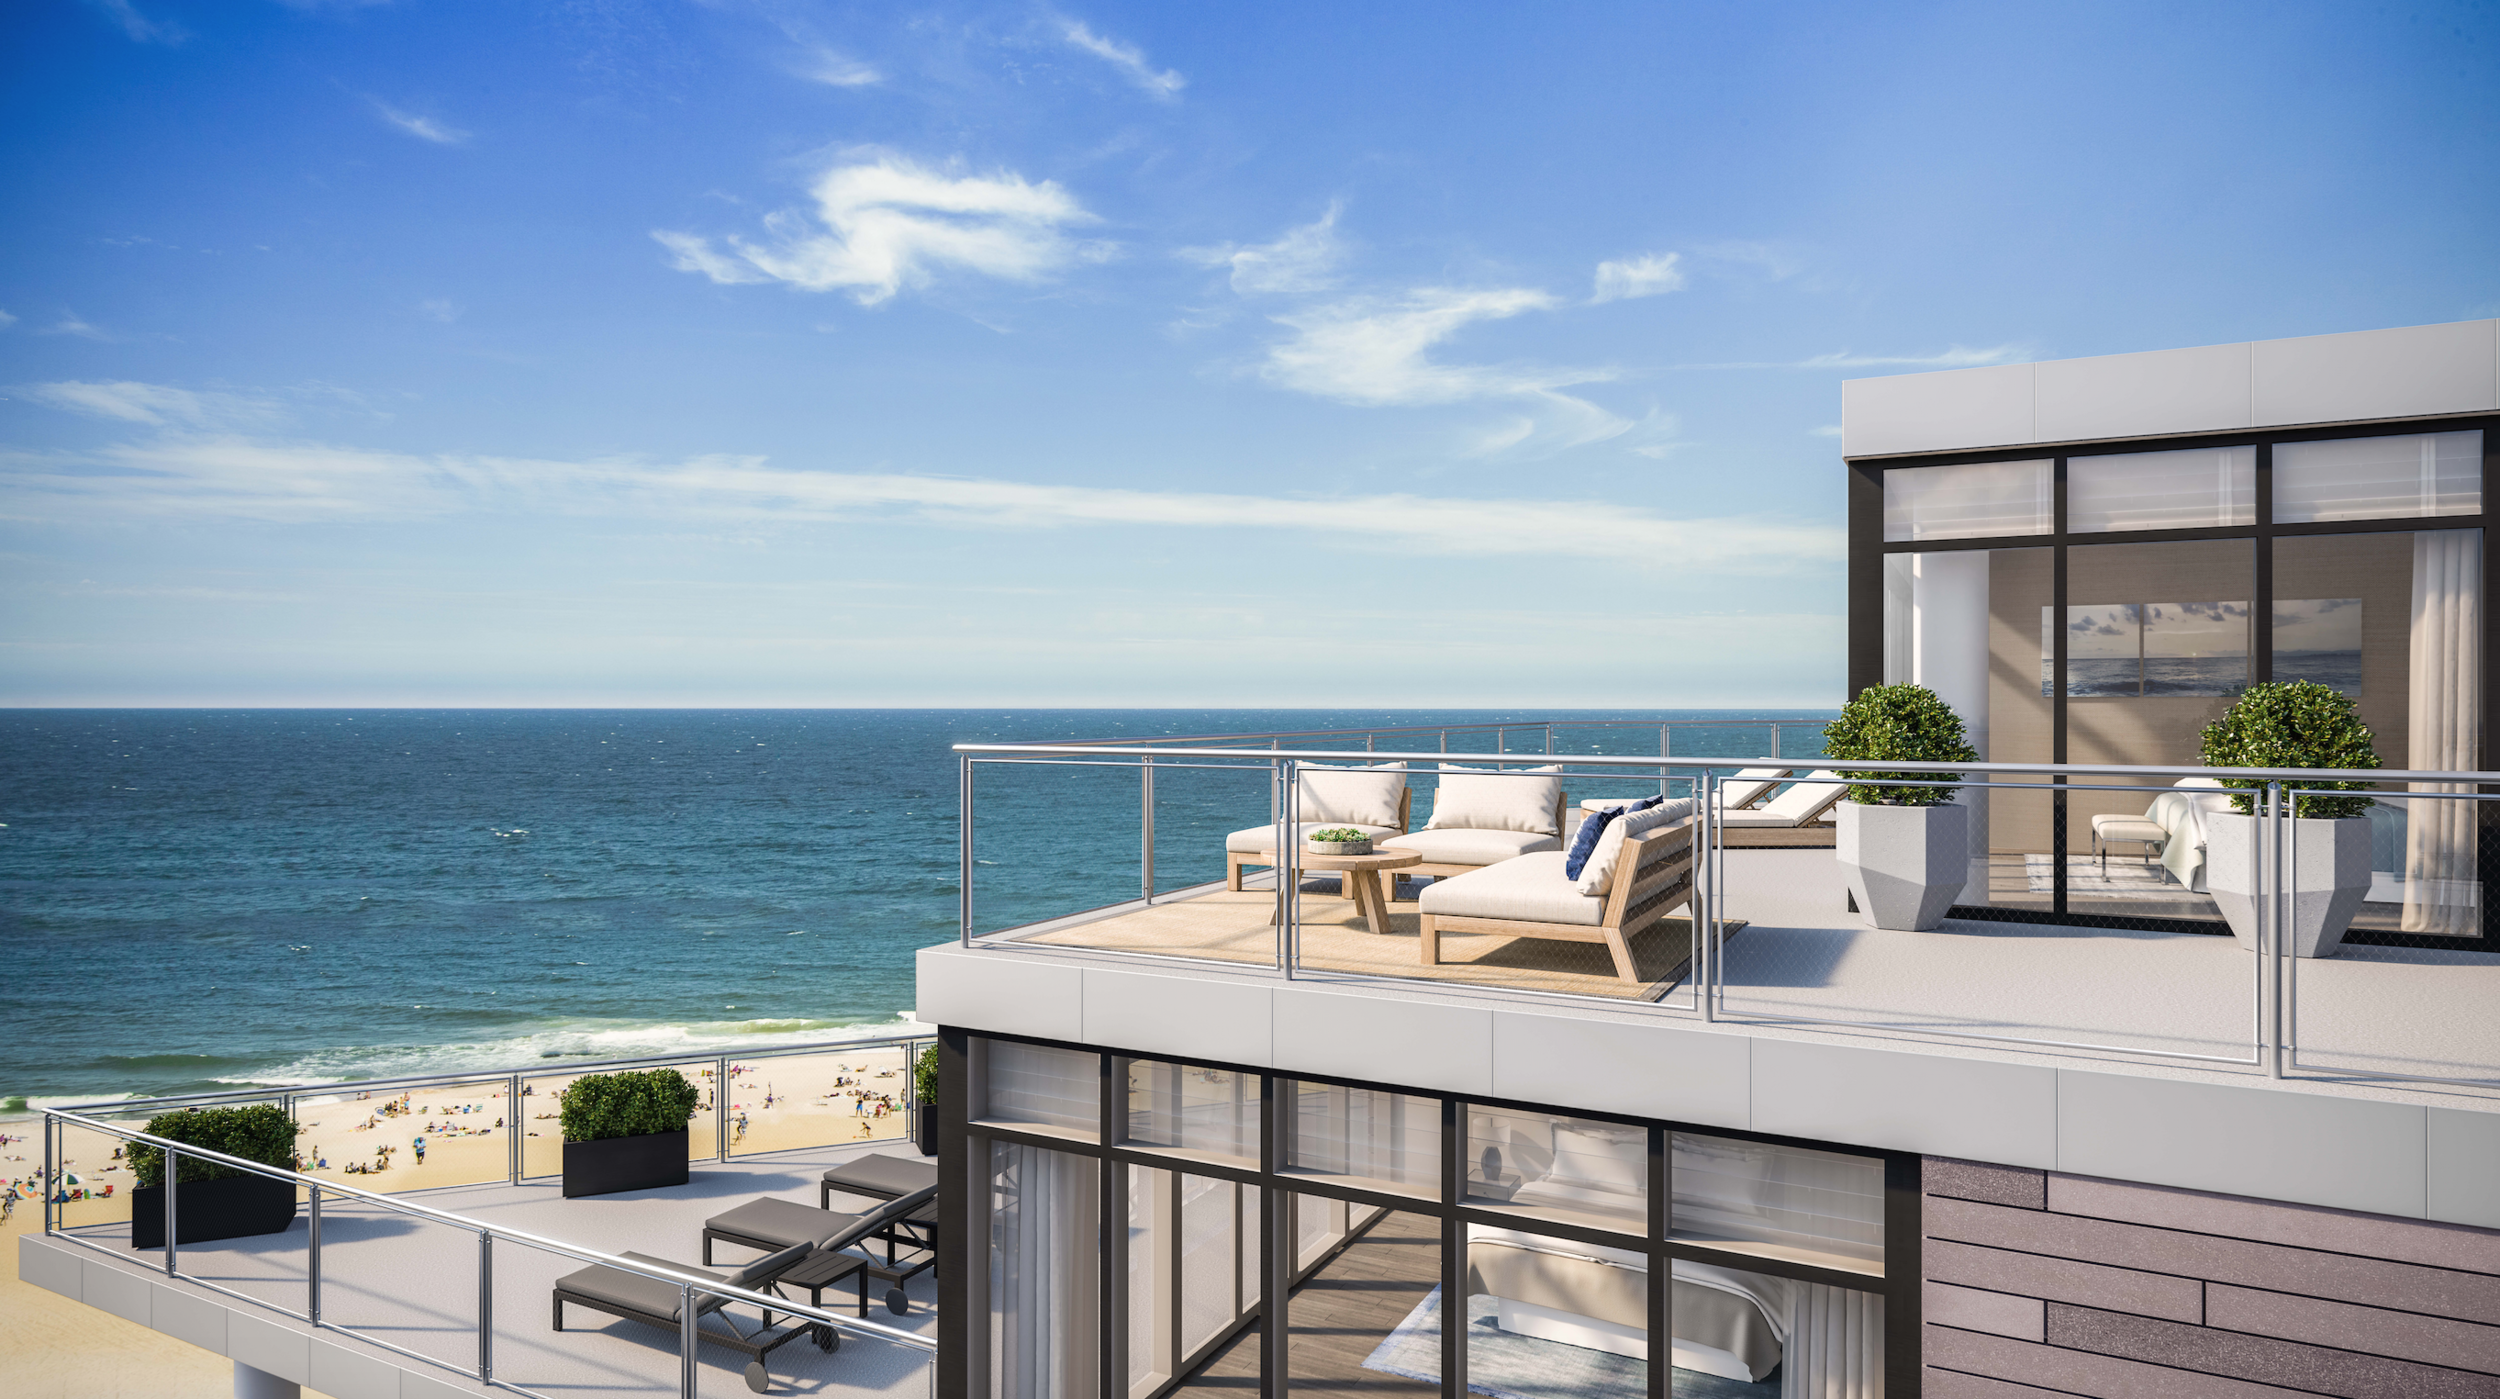 Extell Development Company S First New Jersey Condo The Lofts Pier Village Nearing 50 Sold Profilenyc